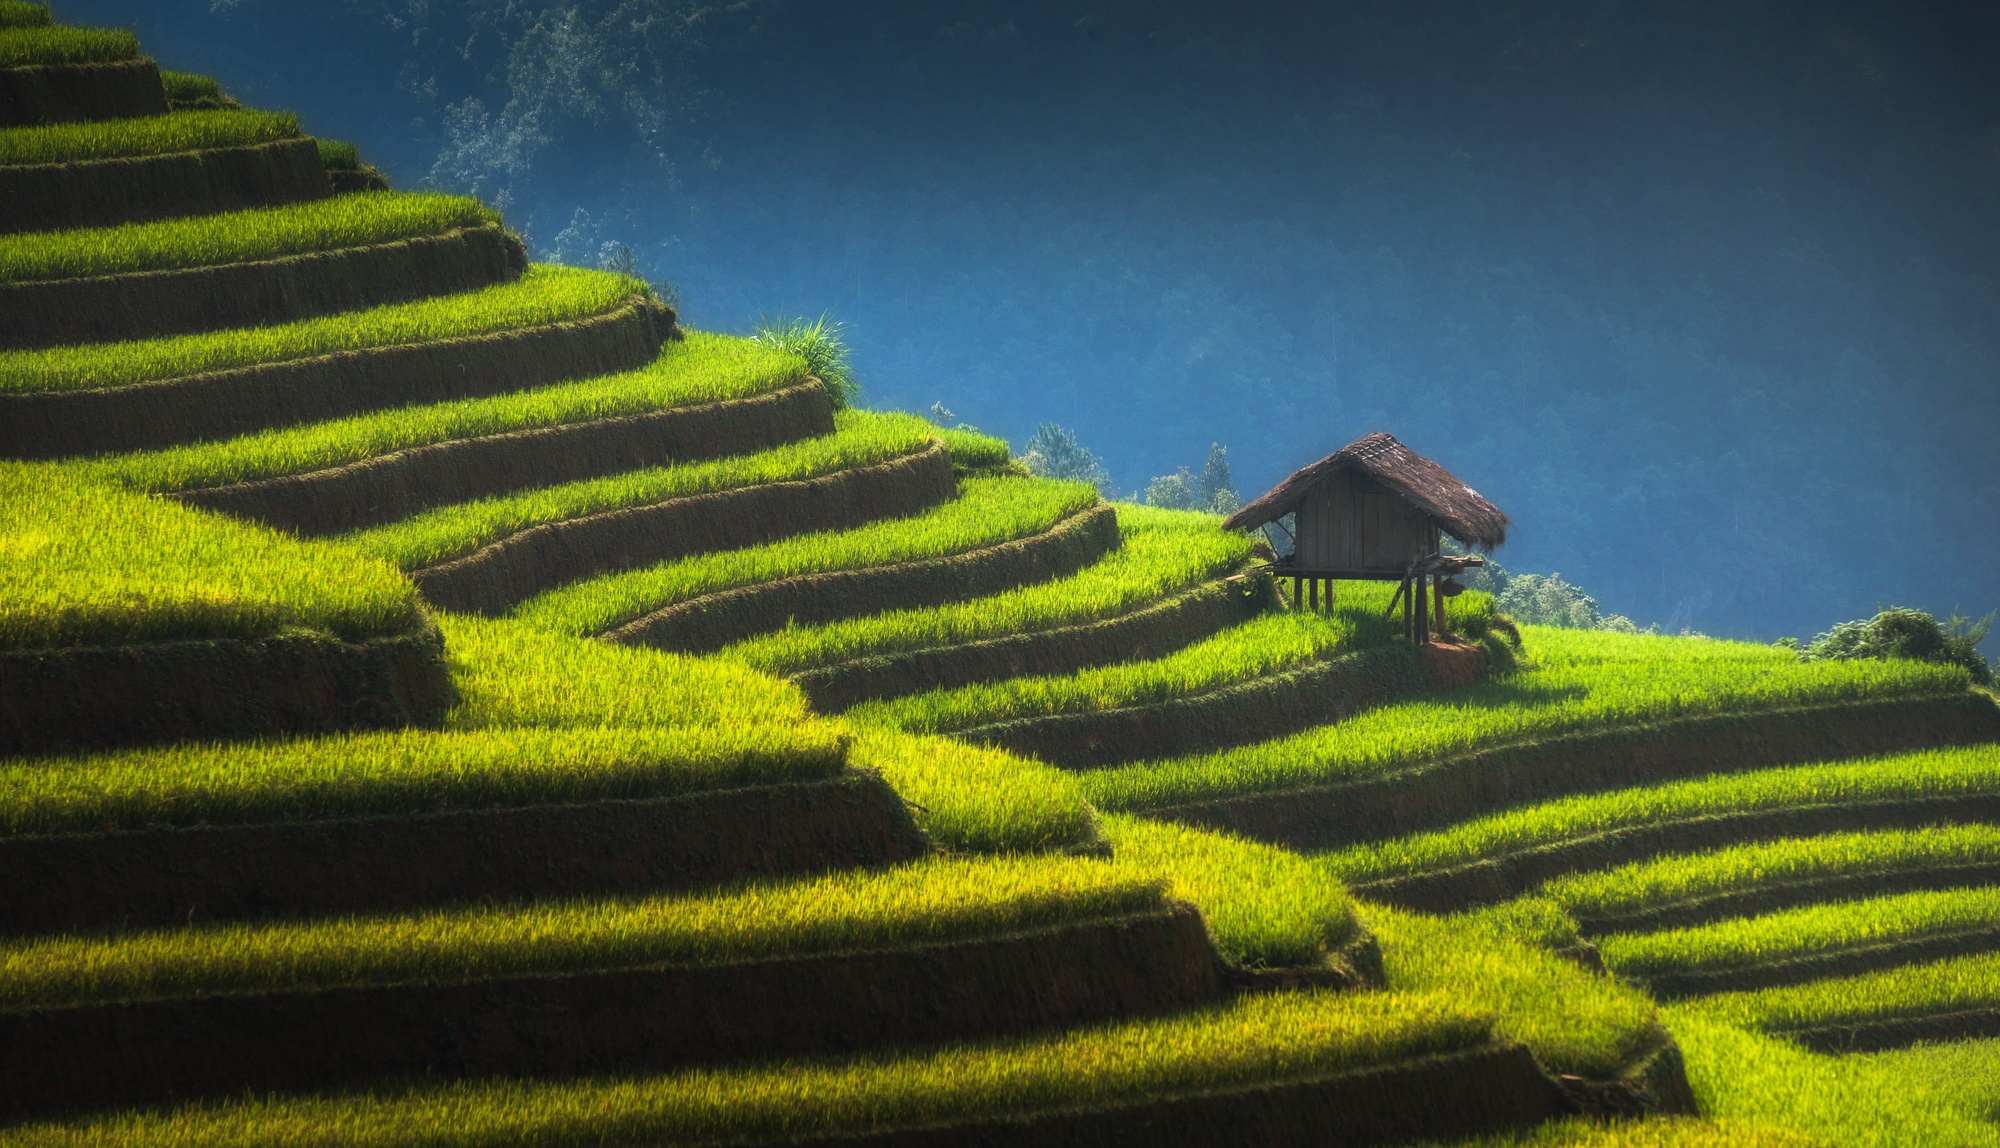 Home on terraced rice field in Vietnam